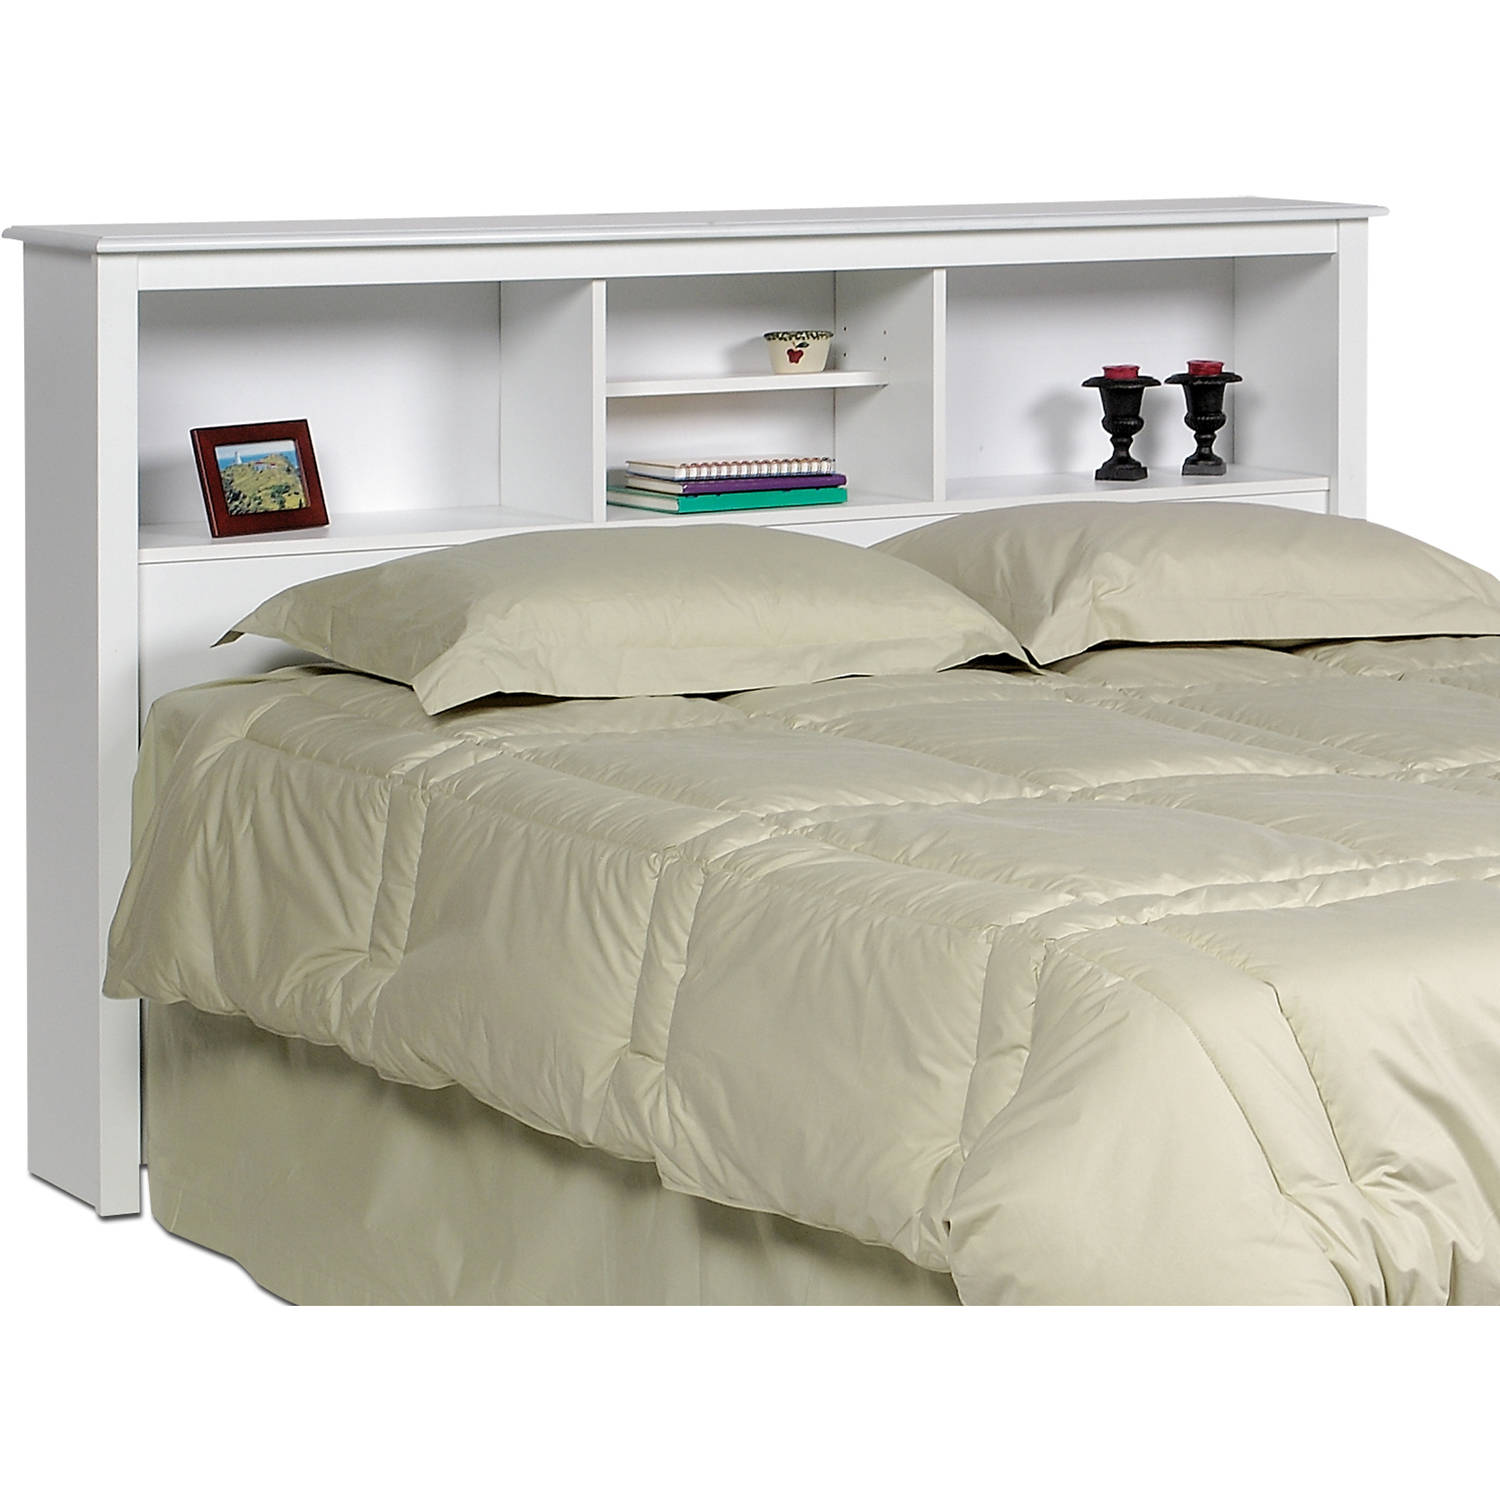 Prepac Full/Queen Bookcase Headboard   Walmart.com